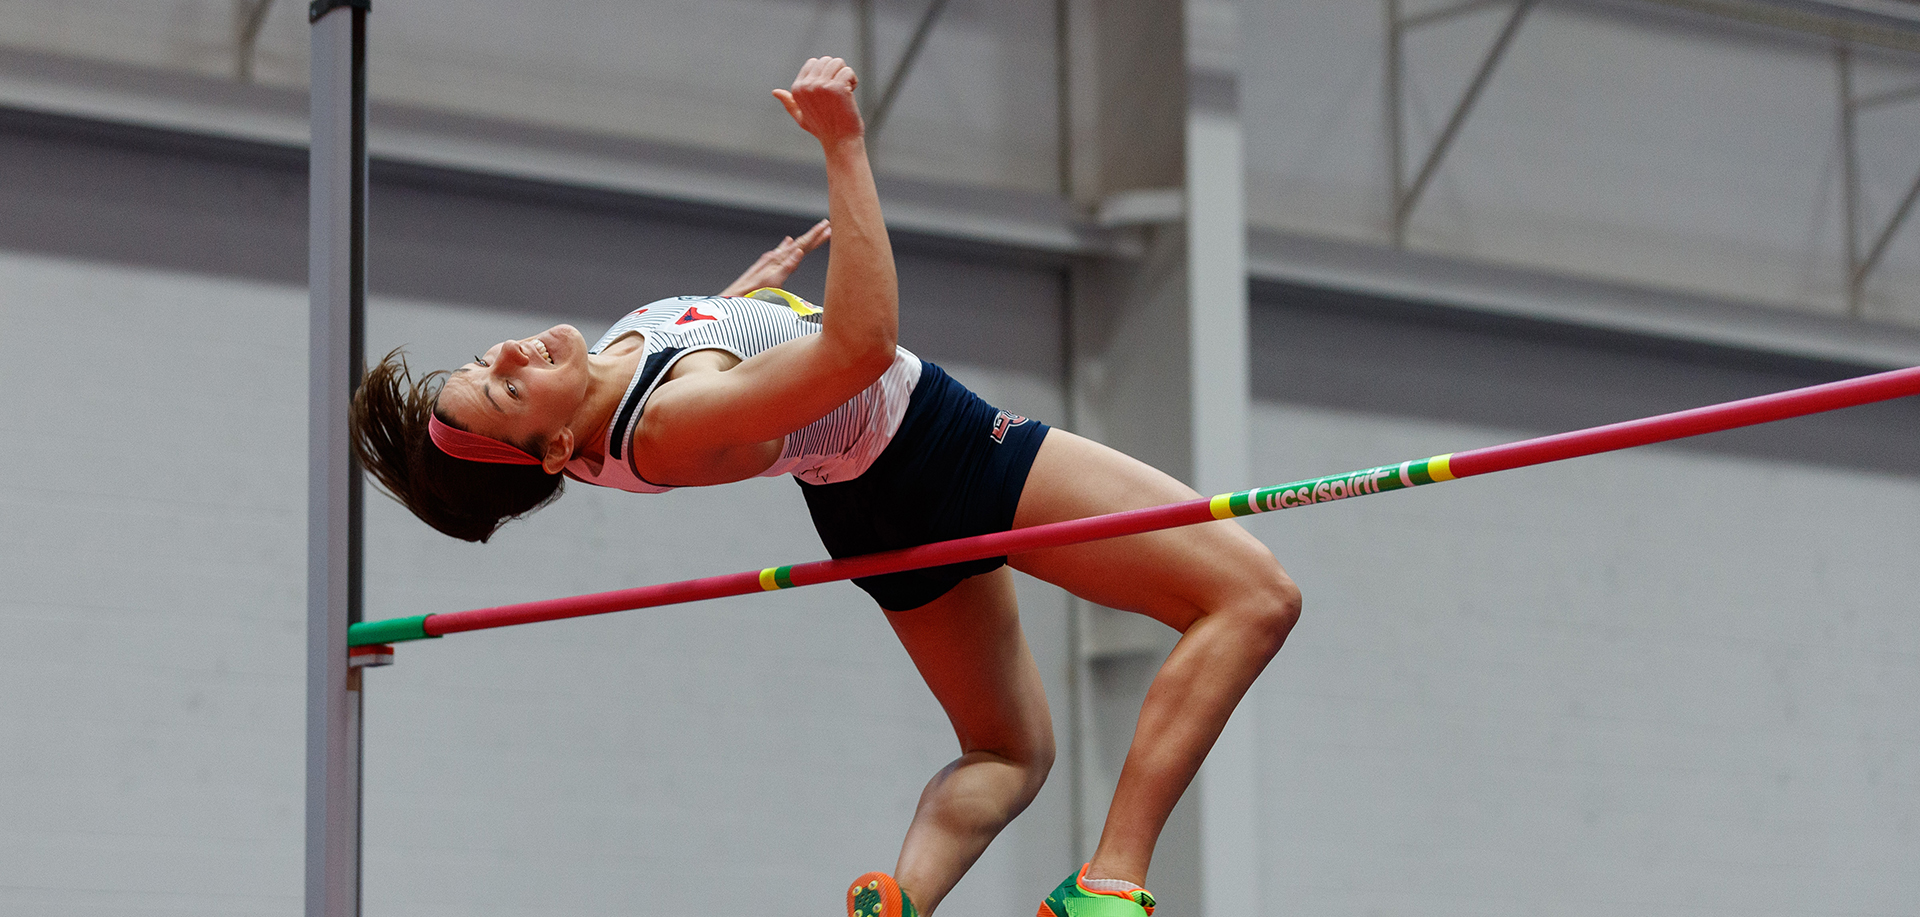 Kylie Polsgrove's successful Friday was headlined by her 5-7.75 high jump clearance.